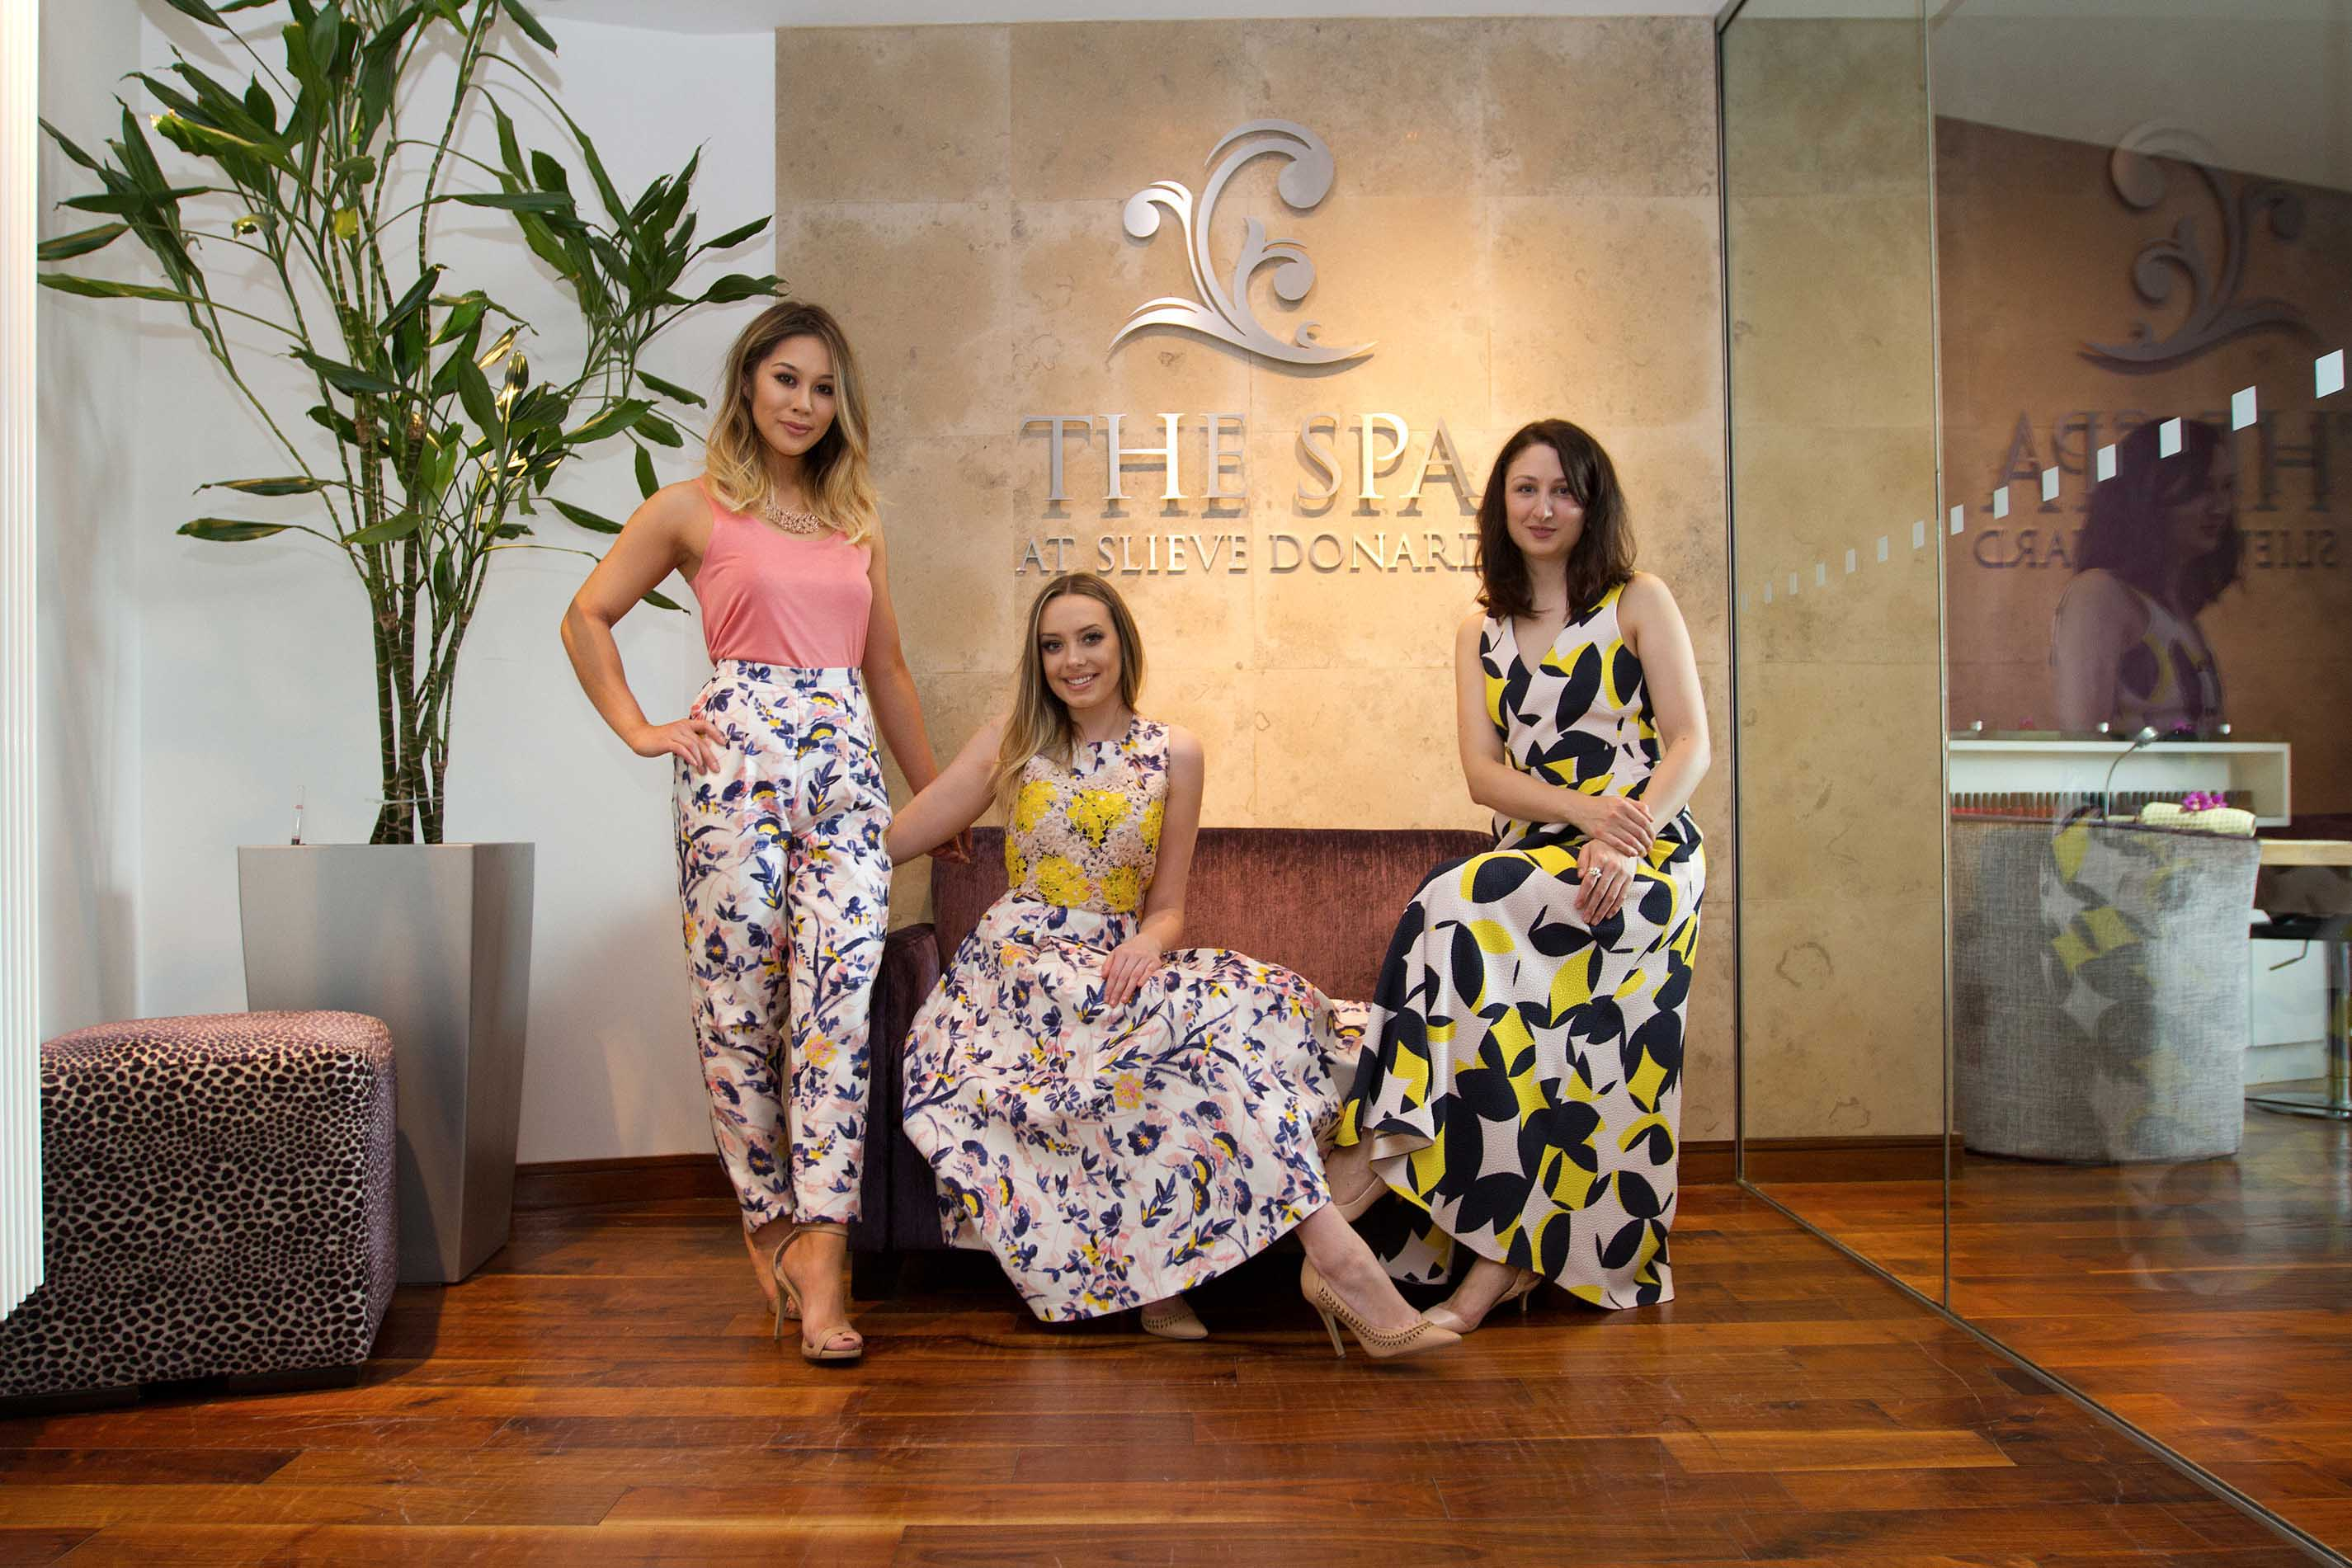 Katherin Farrie (right), from Victoria Square, is joined by Slieve Donard Spa therapists, Rebecca Murray and Sambie Lee, to help prepare for the Summer Styling Showcase event, in association with Victoria Square.